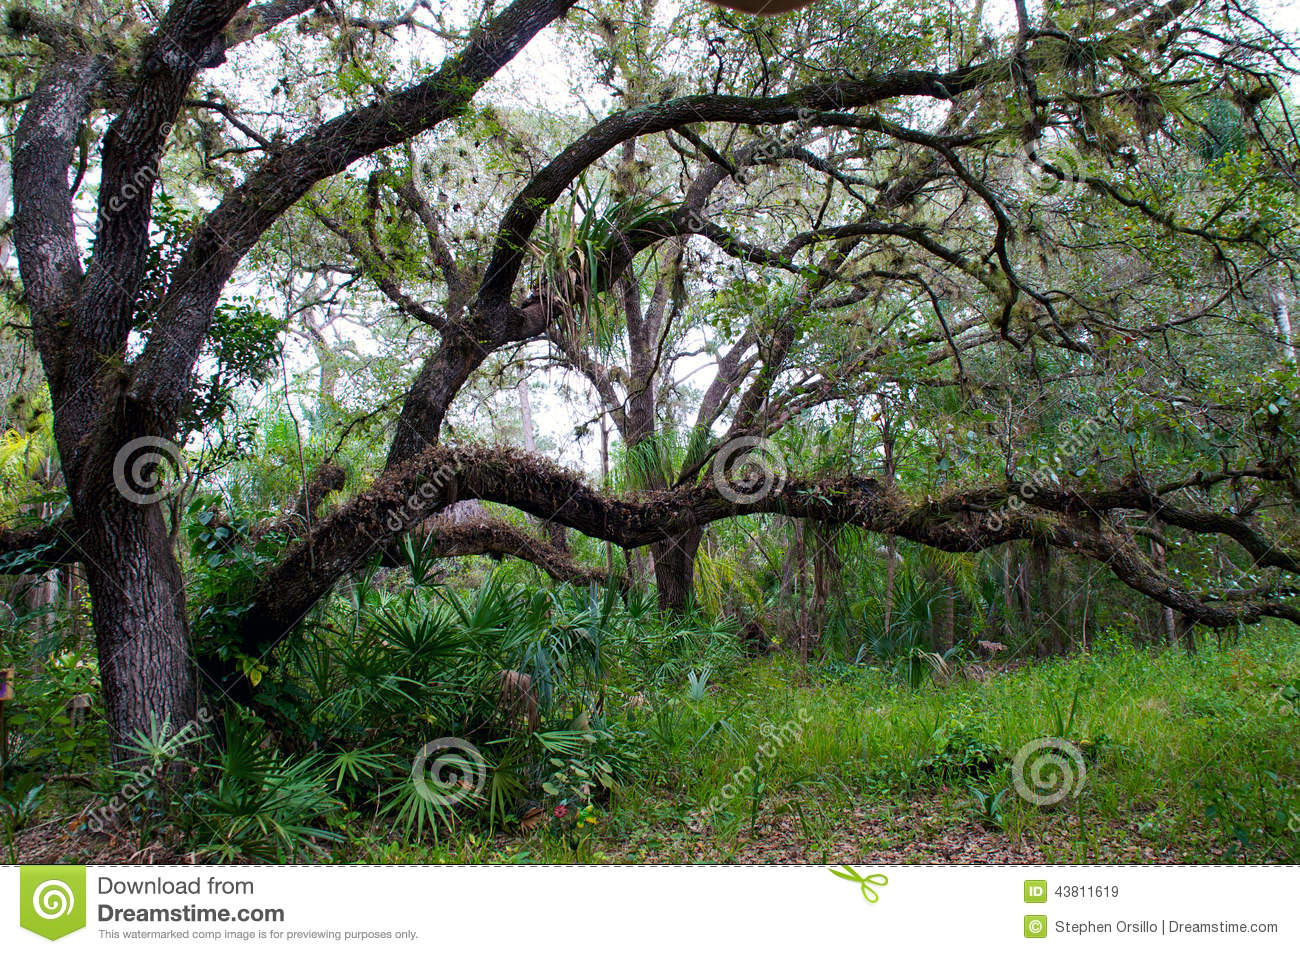 Planting An Oak Tree Best Time : Large low growing oak tree winter surrounded tropical plants trees